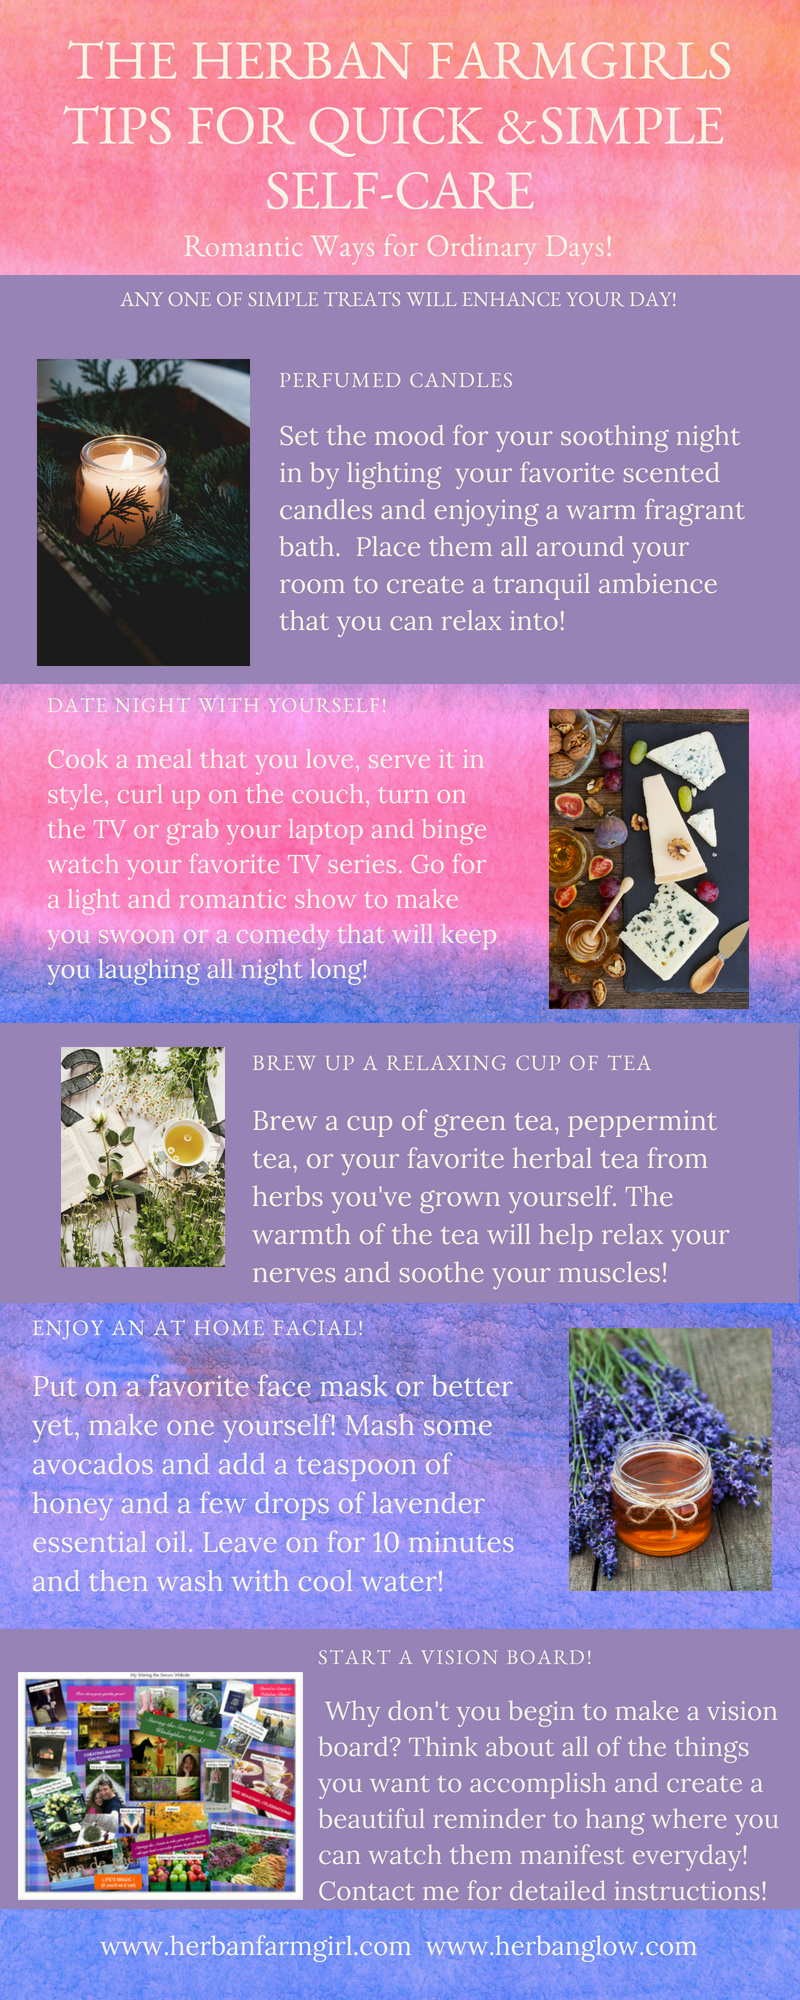 The Herban Farmgirls Guide to Self-Care (2)